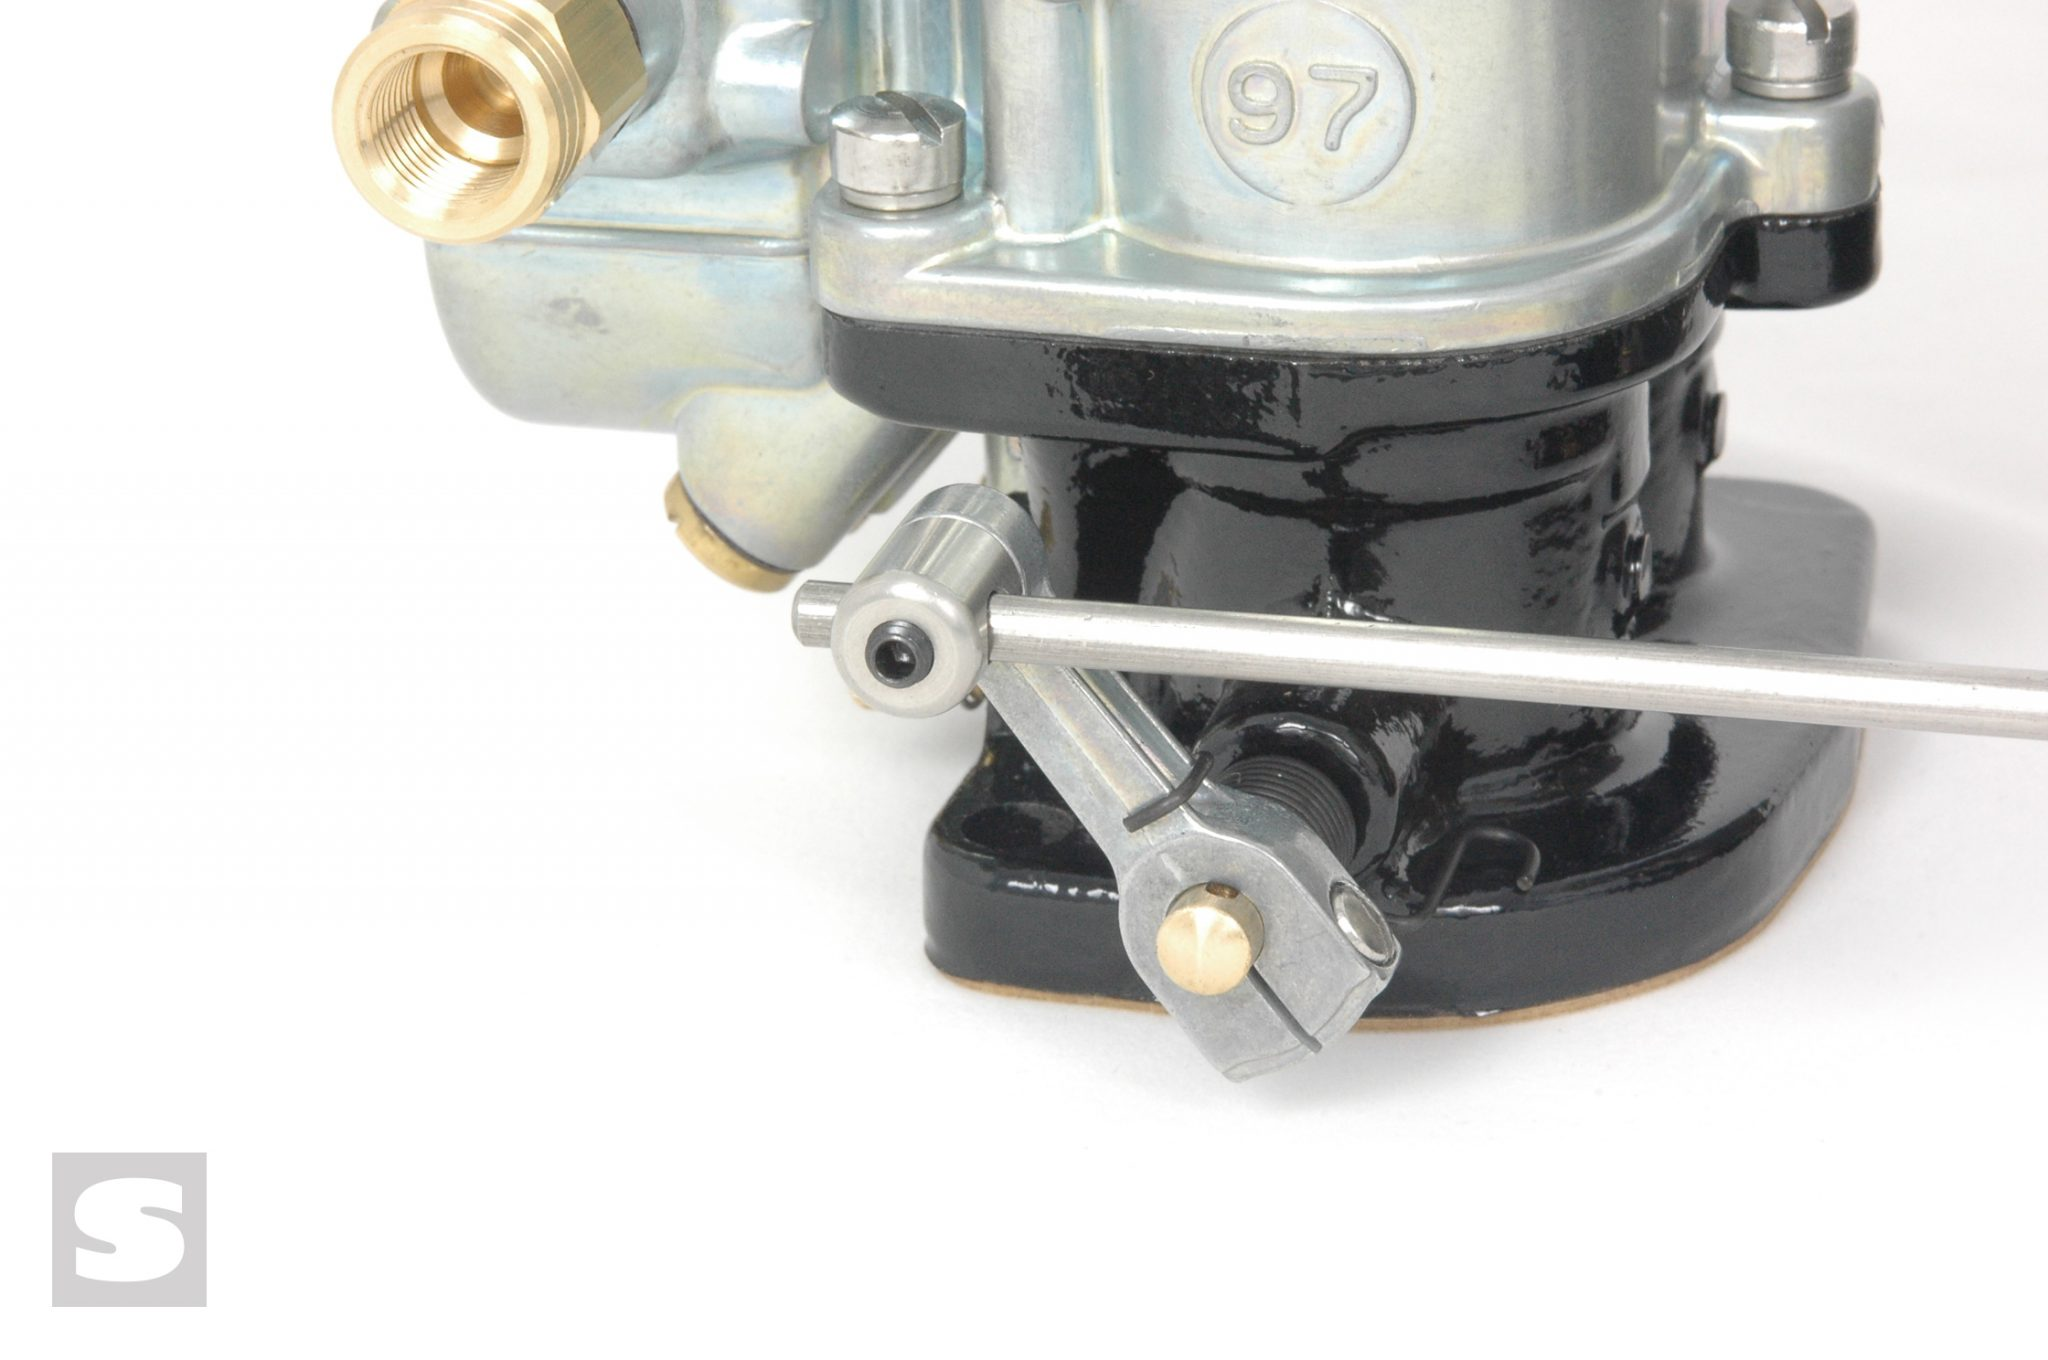 TWOSTEP 2x2 LINKAGE. 5 TO 5-3/16IN CARB SPACING STROMBERG 9248S